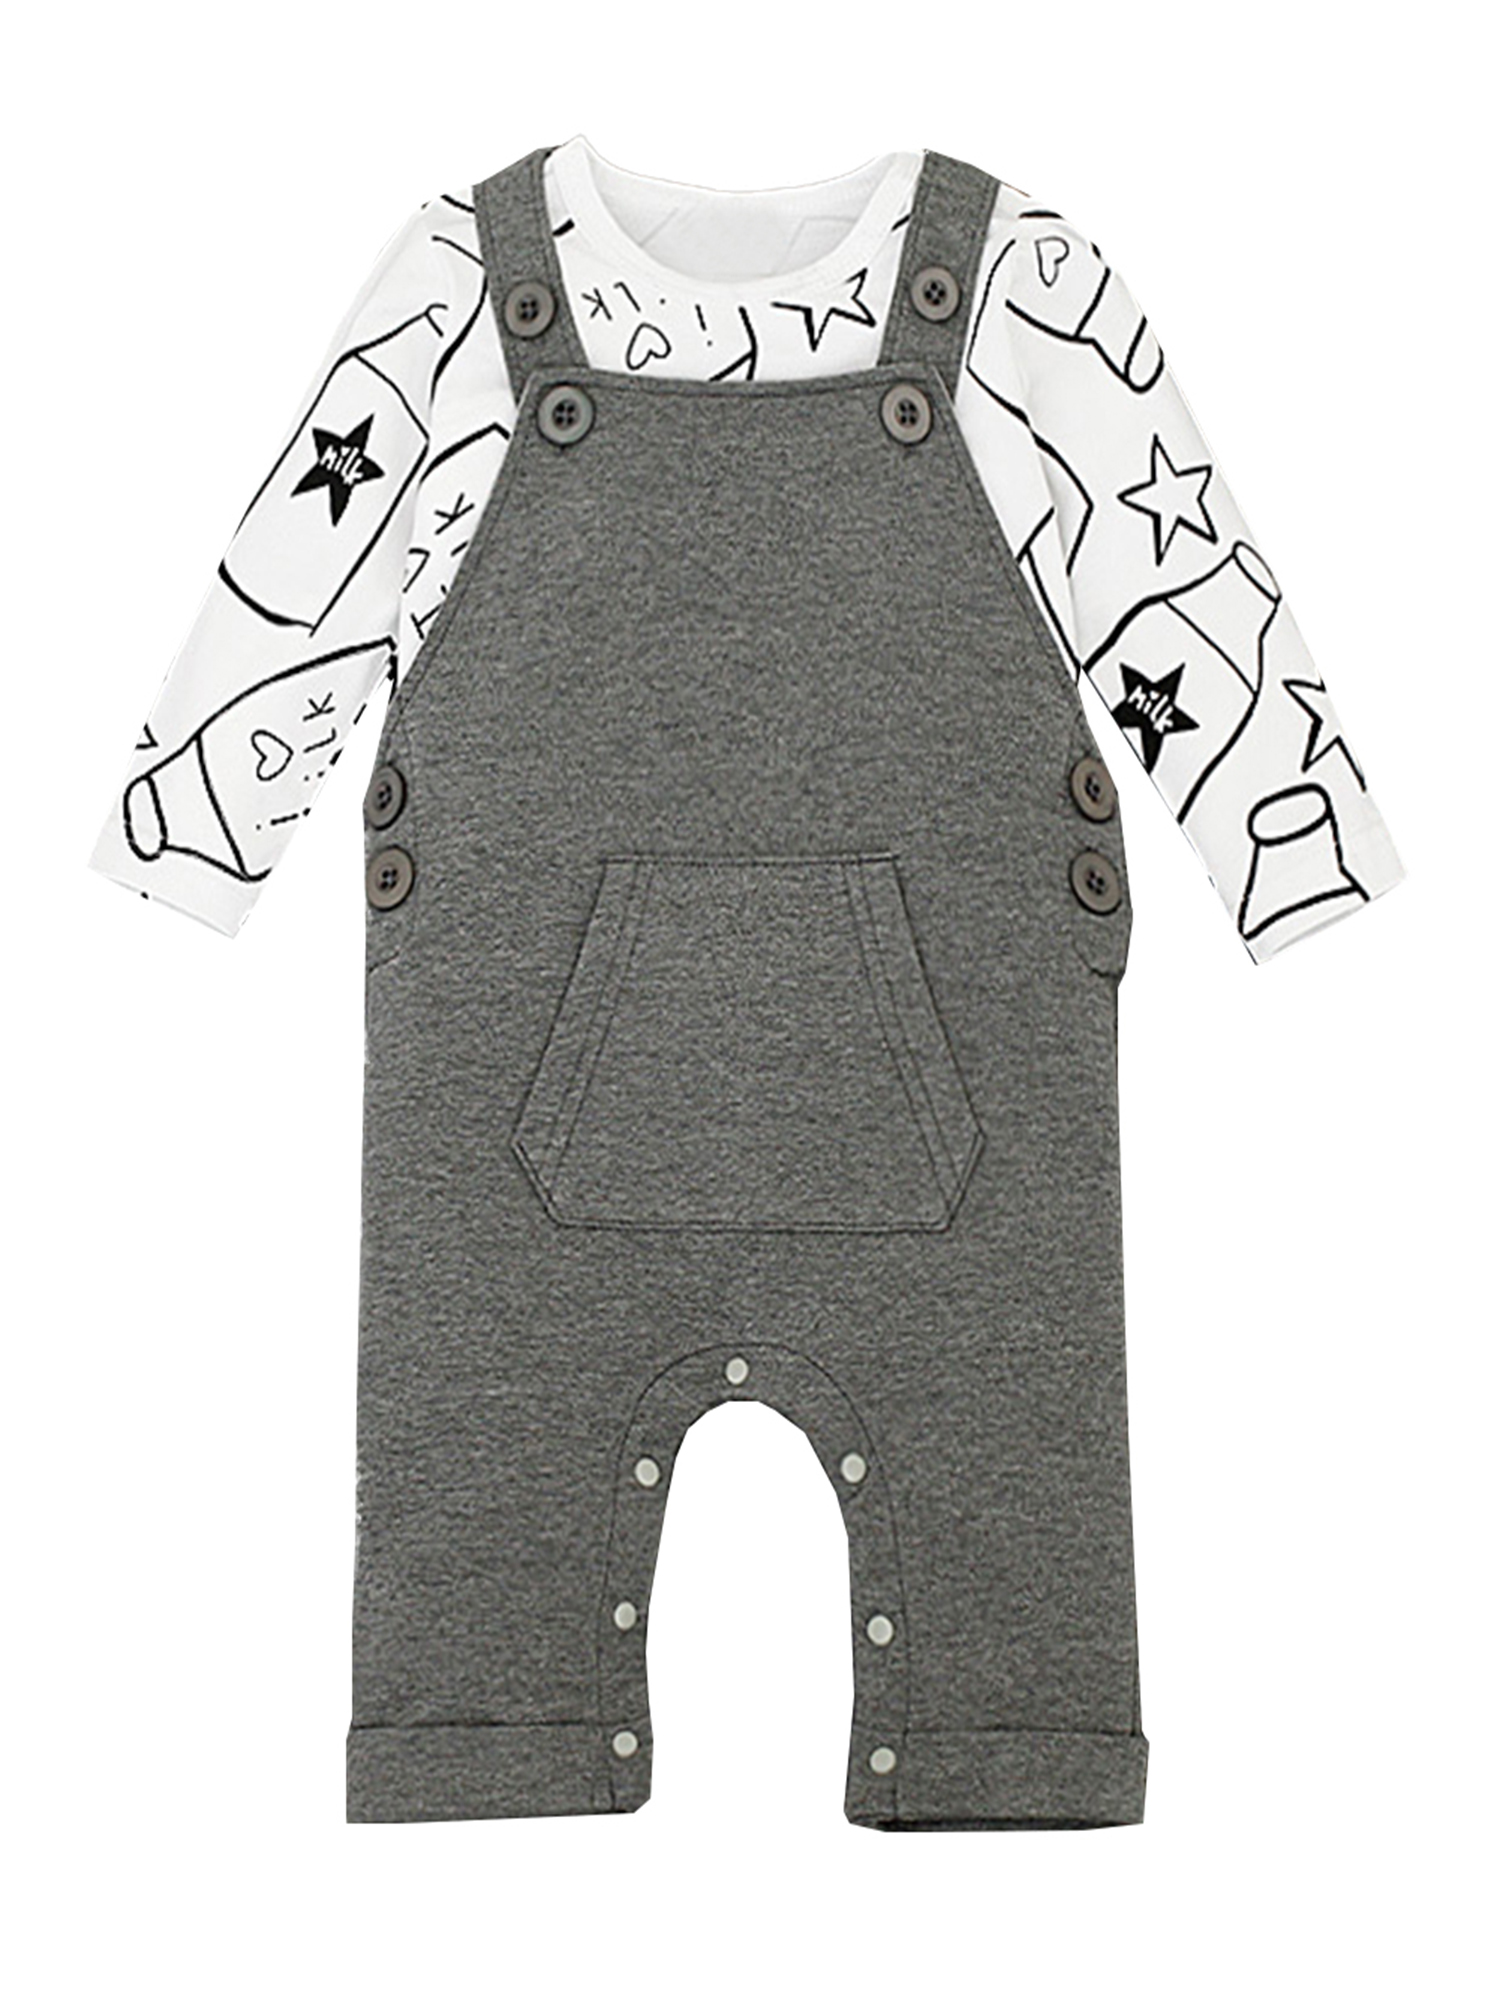 StylesILove Baby Boy Chic Shirt and Lined Overalls 2-pc Clothing Set (18-24 Months, Solid Top Navy-White)